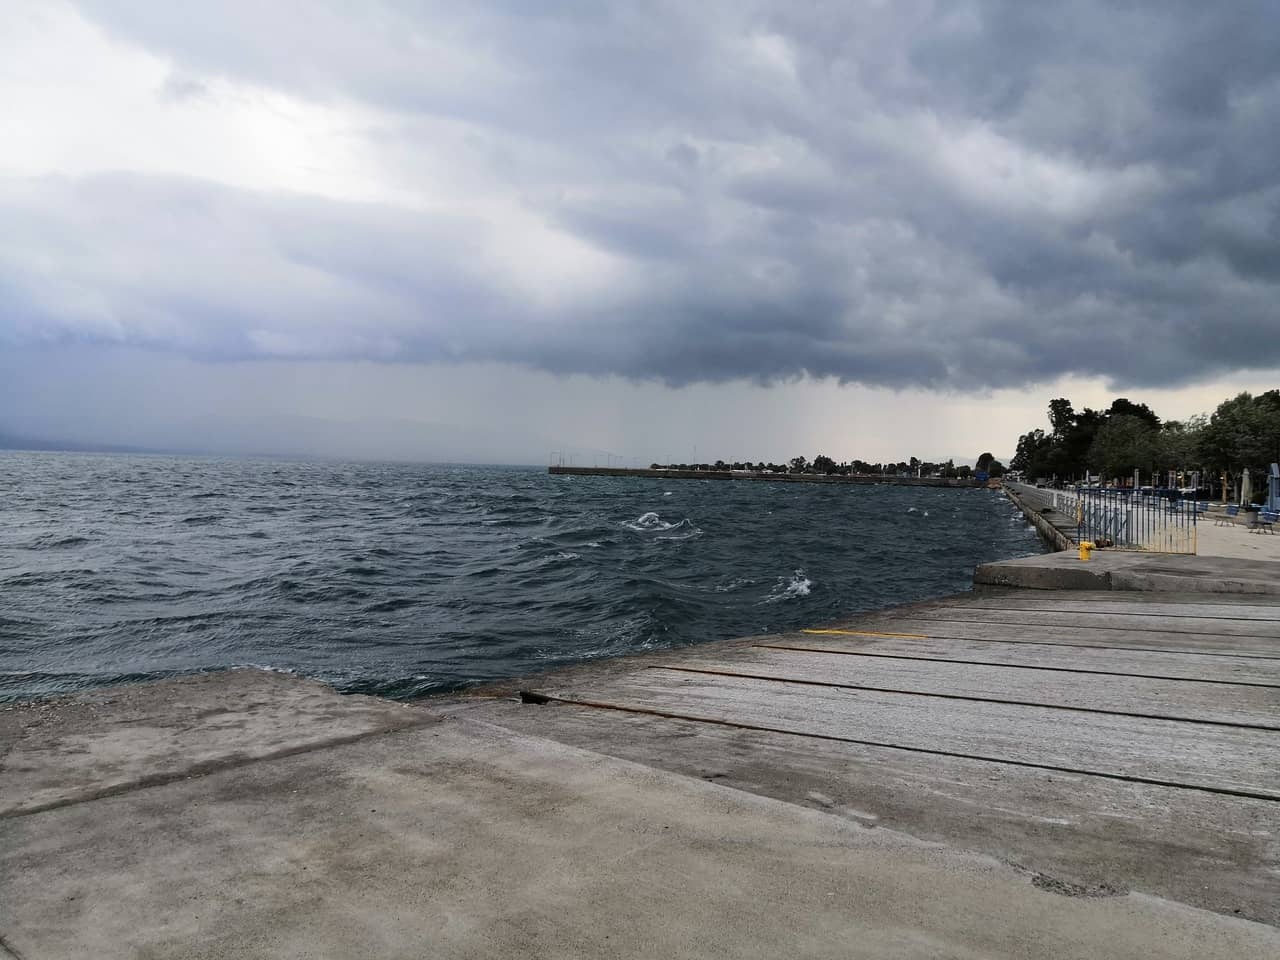 Cloudy view of a seaharbor